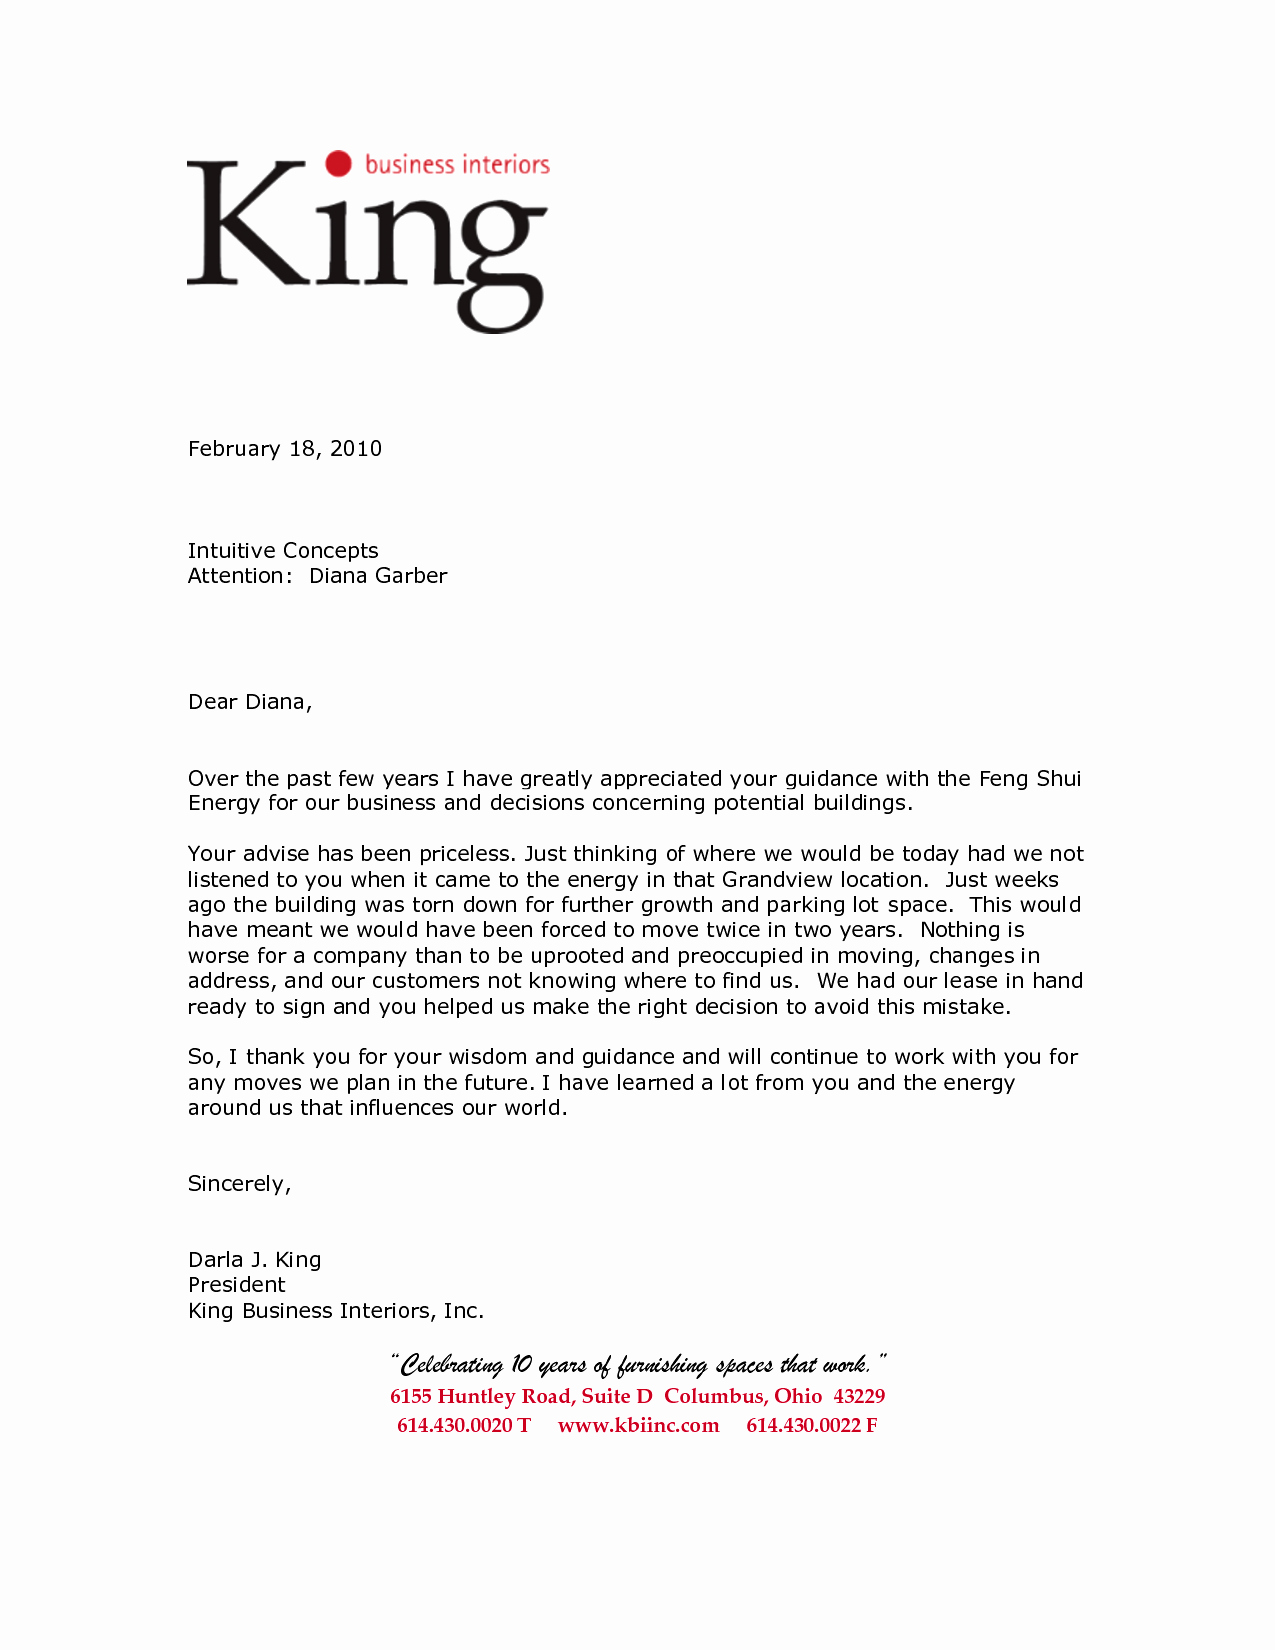 Templates for Letter Of Recommendation Elegant Business Reference Letter Template Mughals